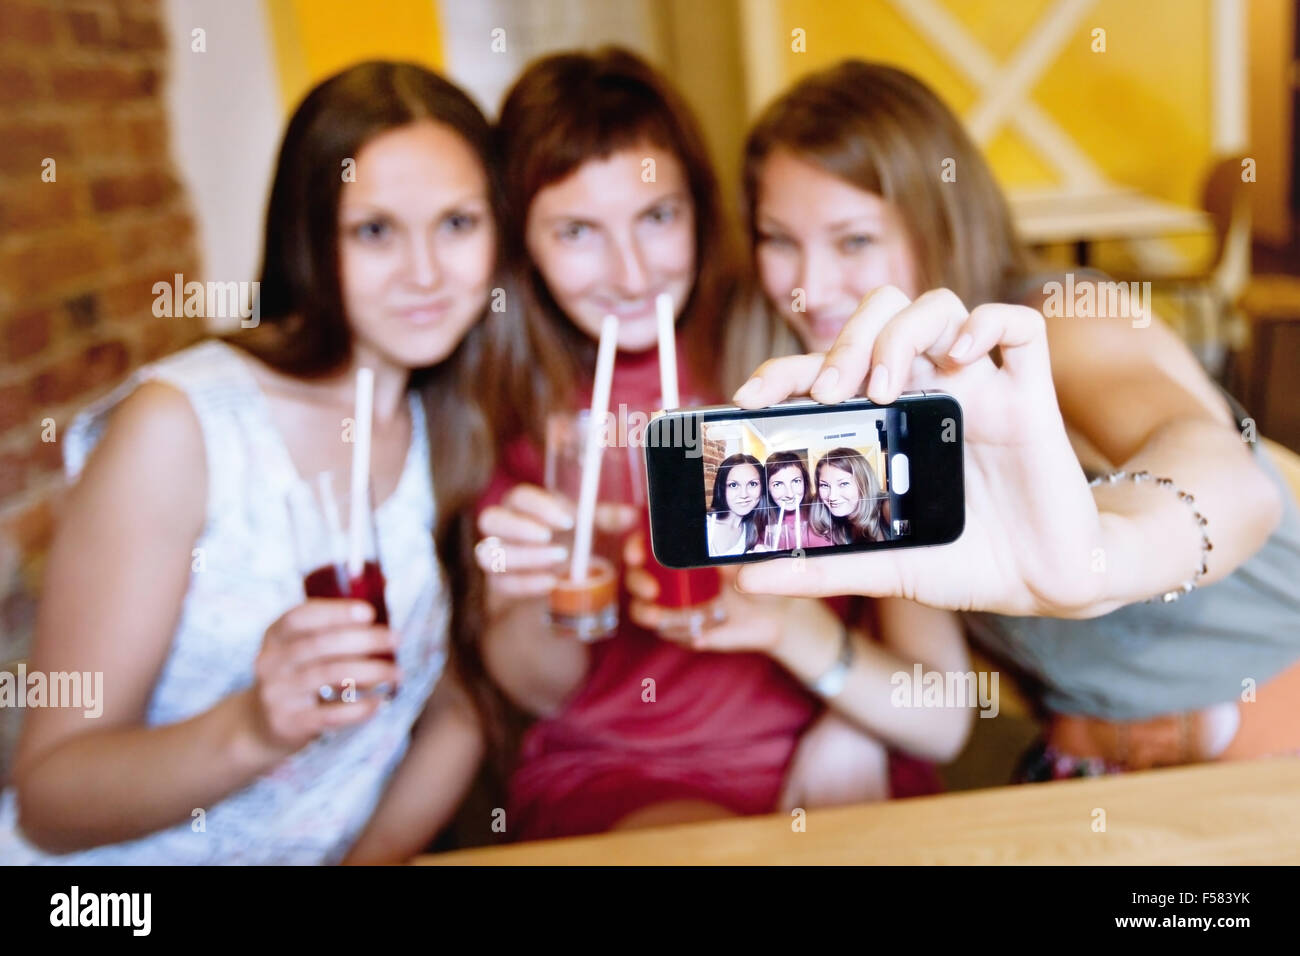 friends taking photo of themselves in cafe during party - Stock Image